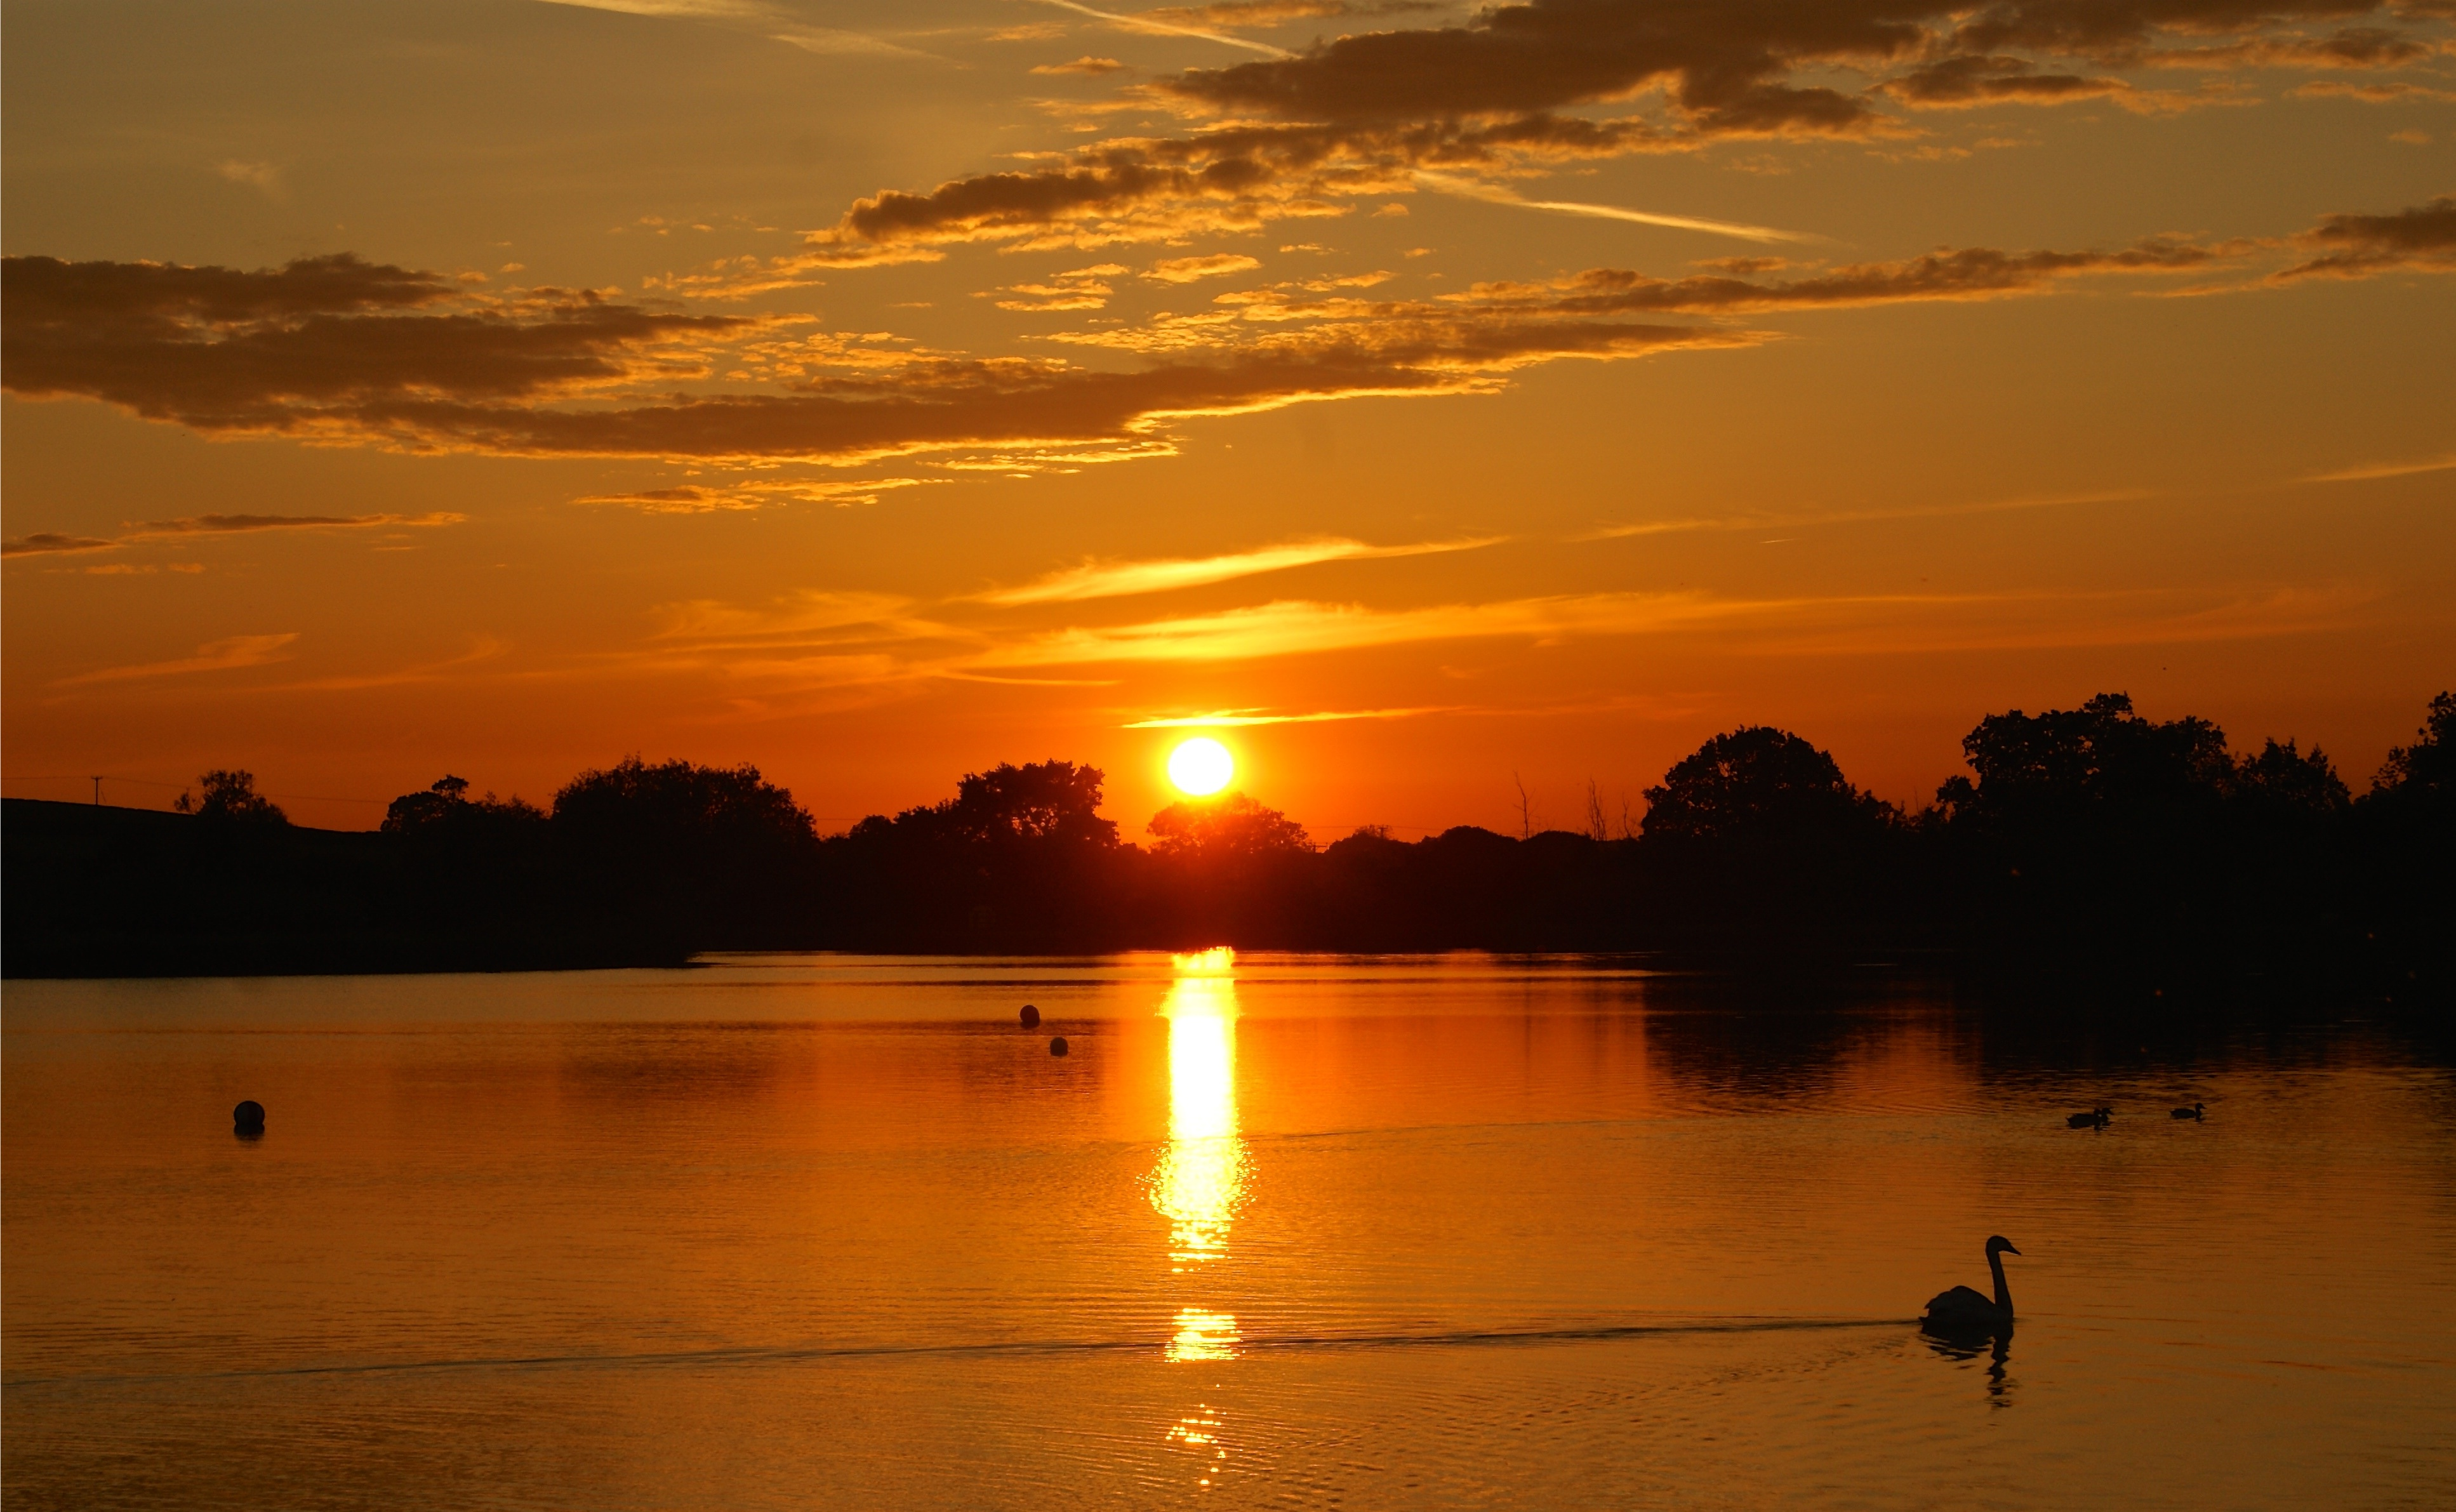 48 Burnt orange sky at Bosworth Water Park